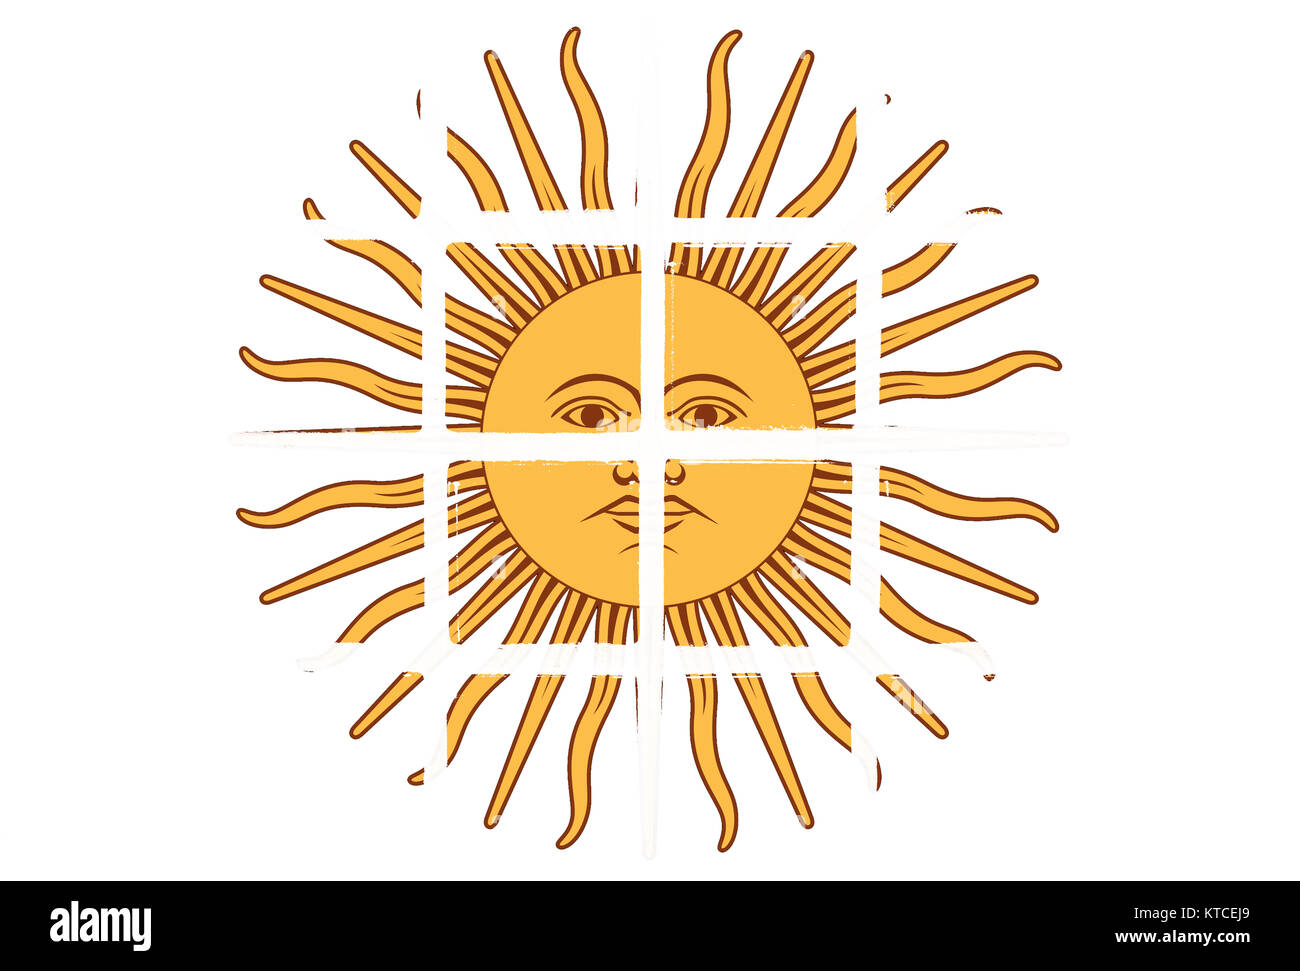 Inca Sun God Image Stock Photos Inca Sun God Image Stock Images